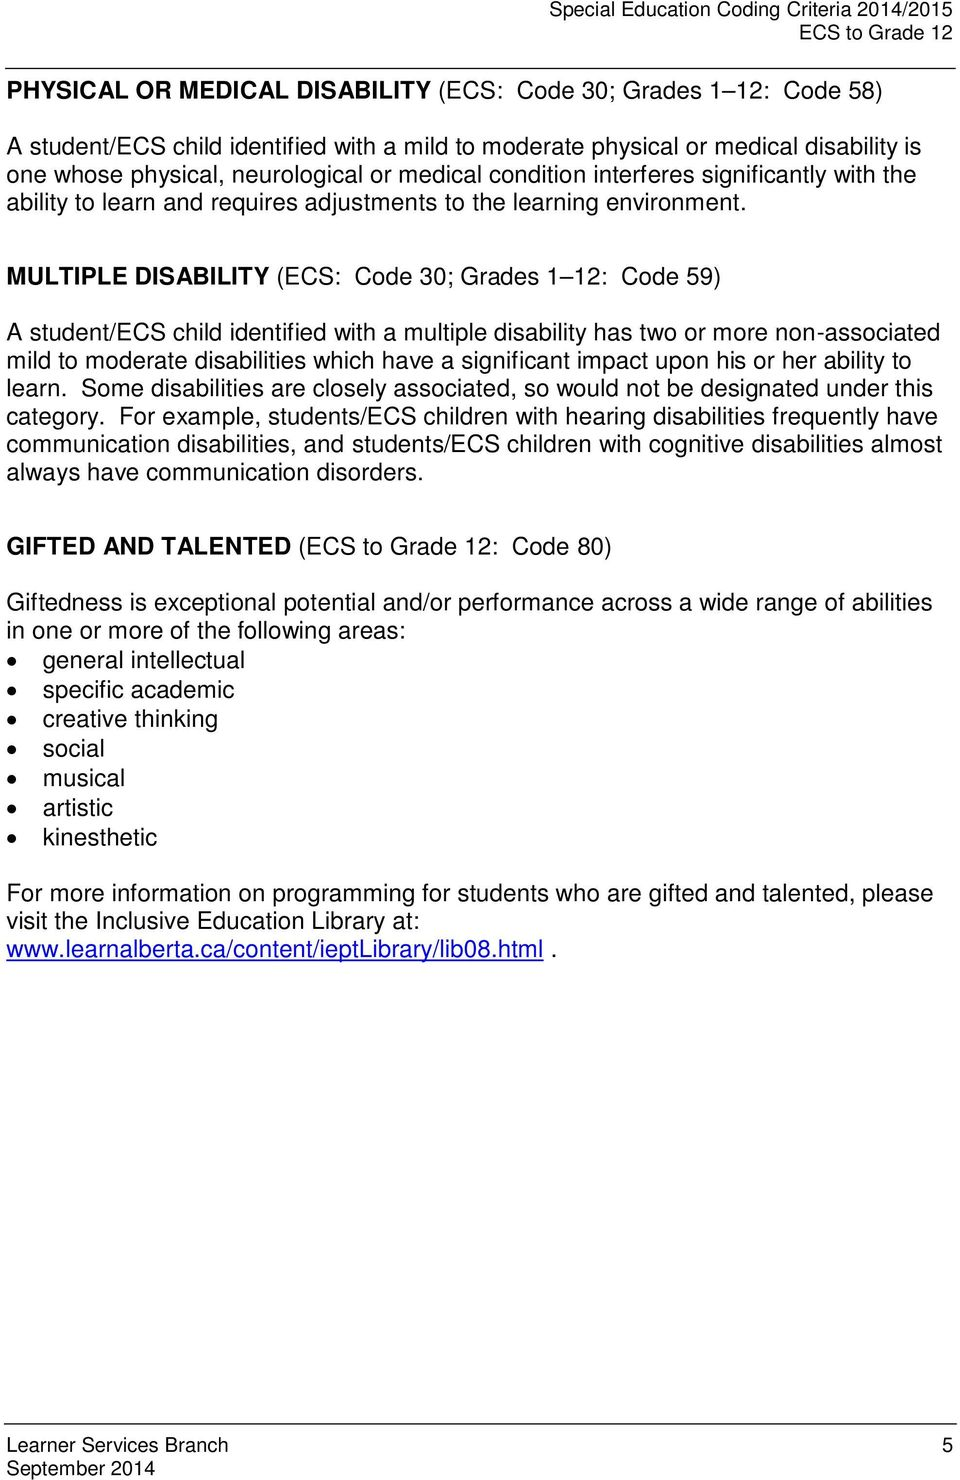 MULTIPLE DISABILITY (ECS: Code 30; Grades 1 12: Code 59) A student/ecs child identified with a multiple disability has two or more non-associated mild to moderate disabilities which have a